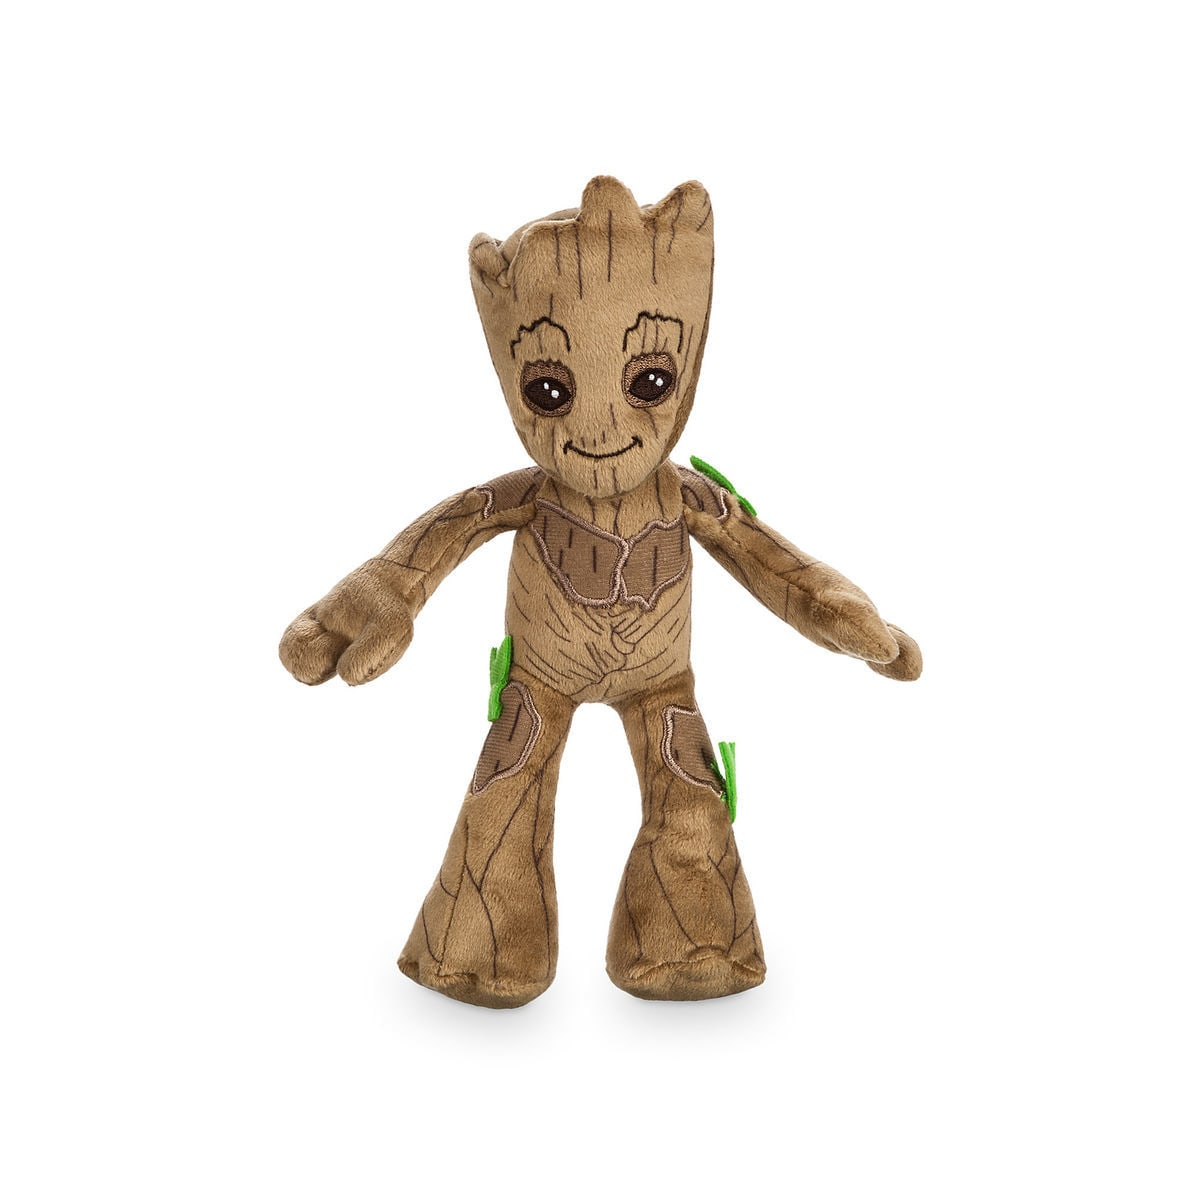 Product Image of Groot Plush - Guardians of the Galaxy Vol. 2 - Mini Bean Bag - 8 1/2'' # 1